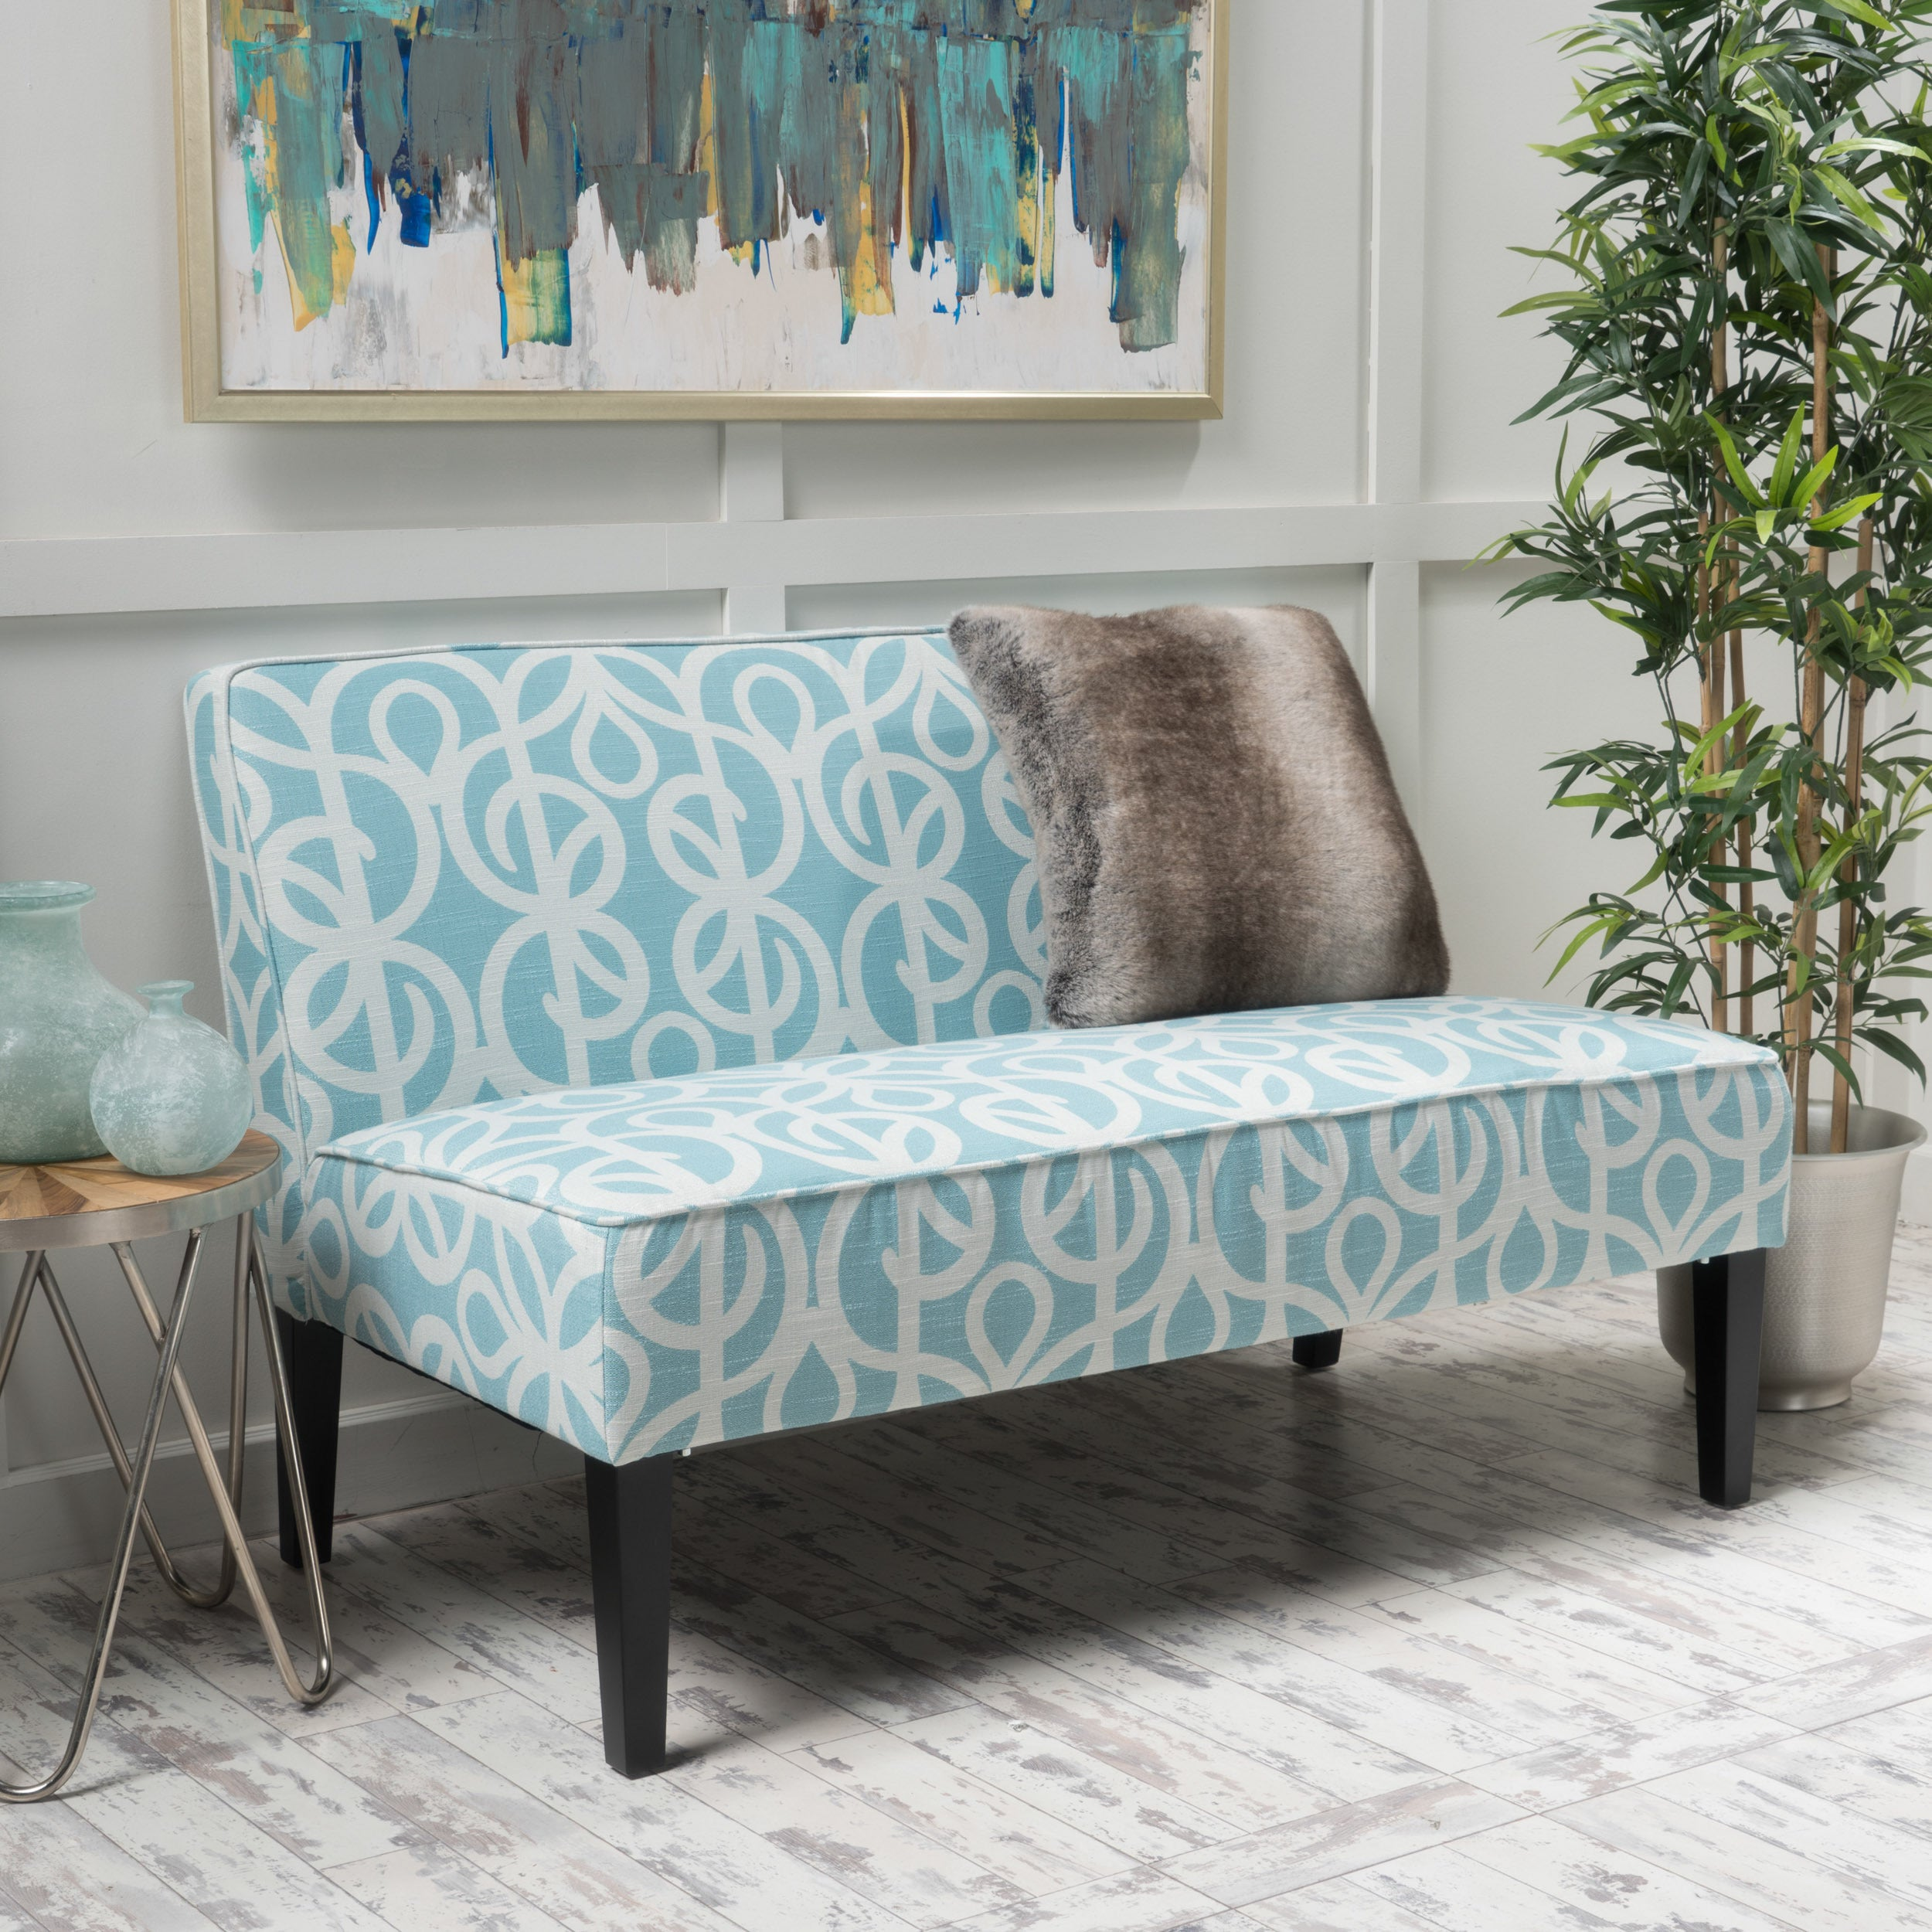 of sofas best about seater fabric pin leather we any with velvet loveseat patterned sell corner sofa crushed remodel inspiration trend